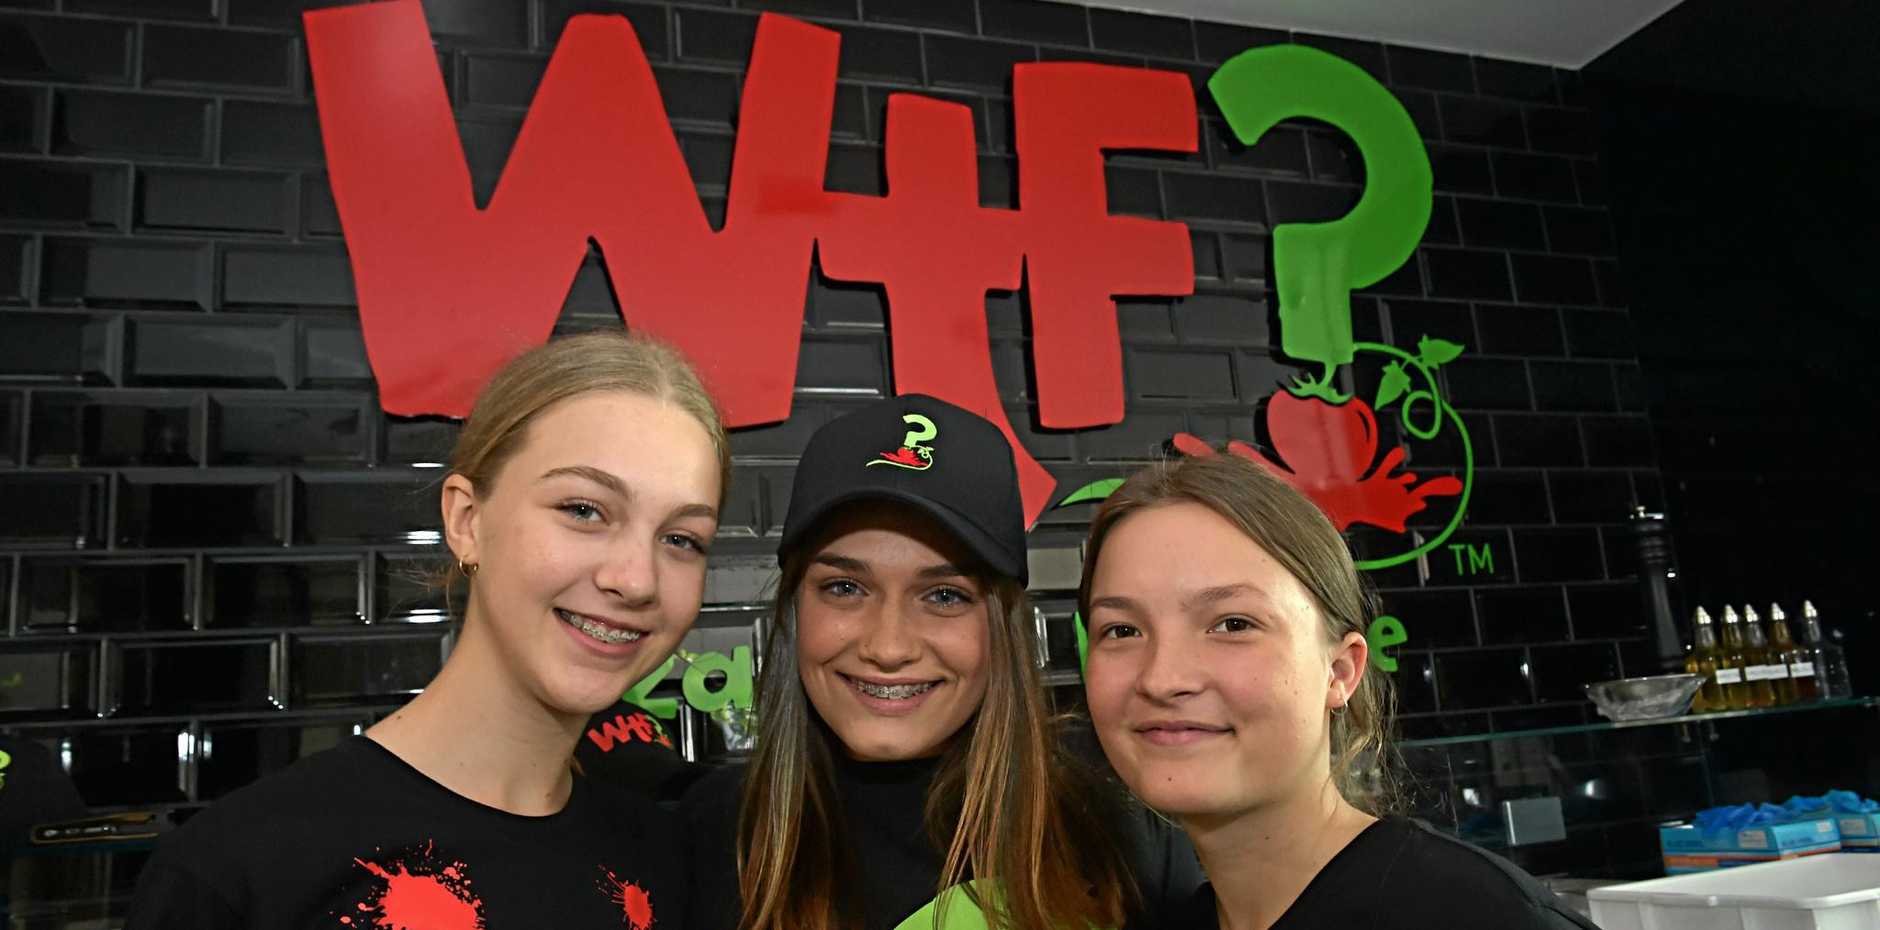 New Store Allows Customers To Personalise Their Pizza  Sunshine Coast Daily-8790